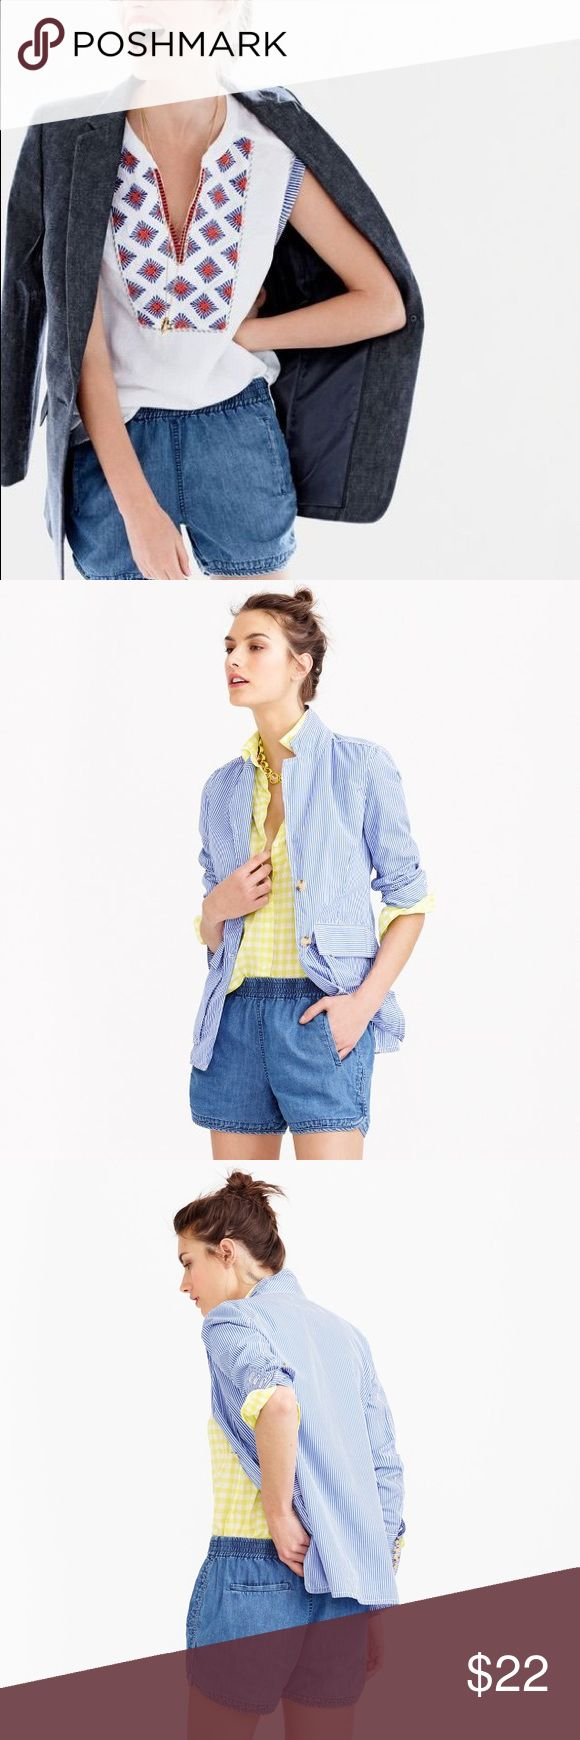 drapey chambray pull on short Pull on lightweight drapey chambray shorts with an elastic band at the waist. Perfect for warm summer days! Cotton/tencel/silk/linen J. Crew Shorts Jean Shorts